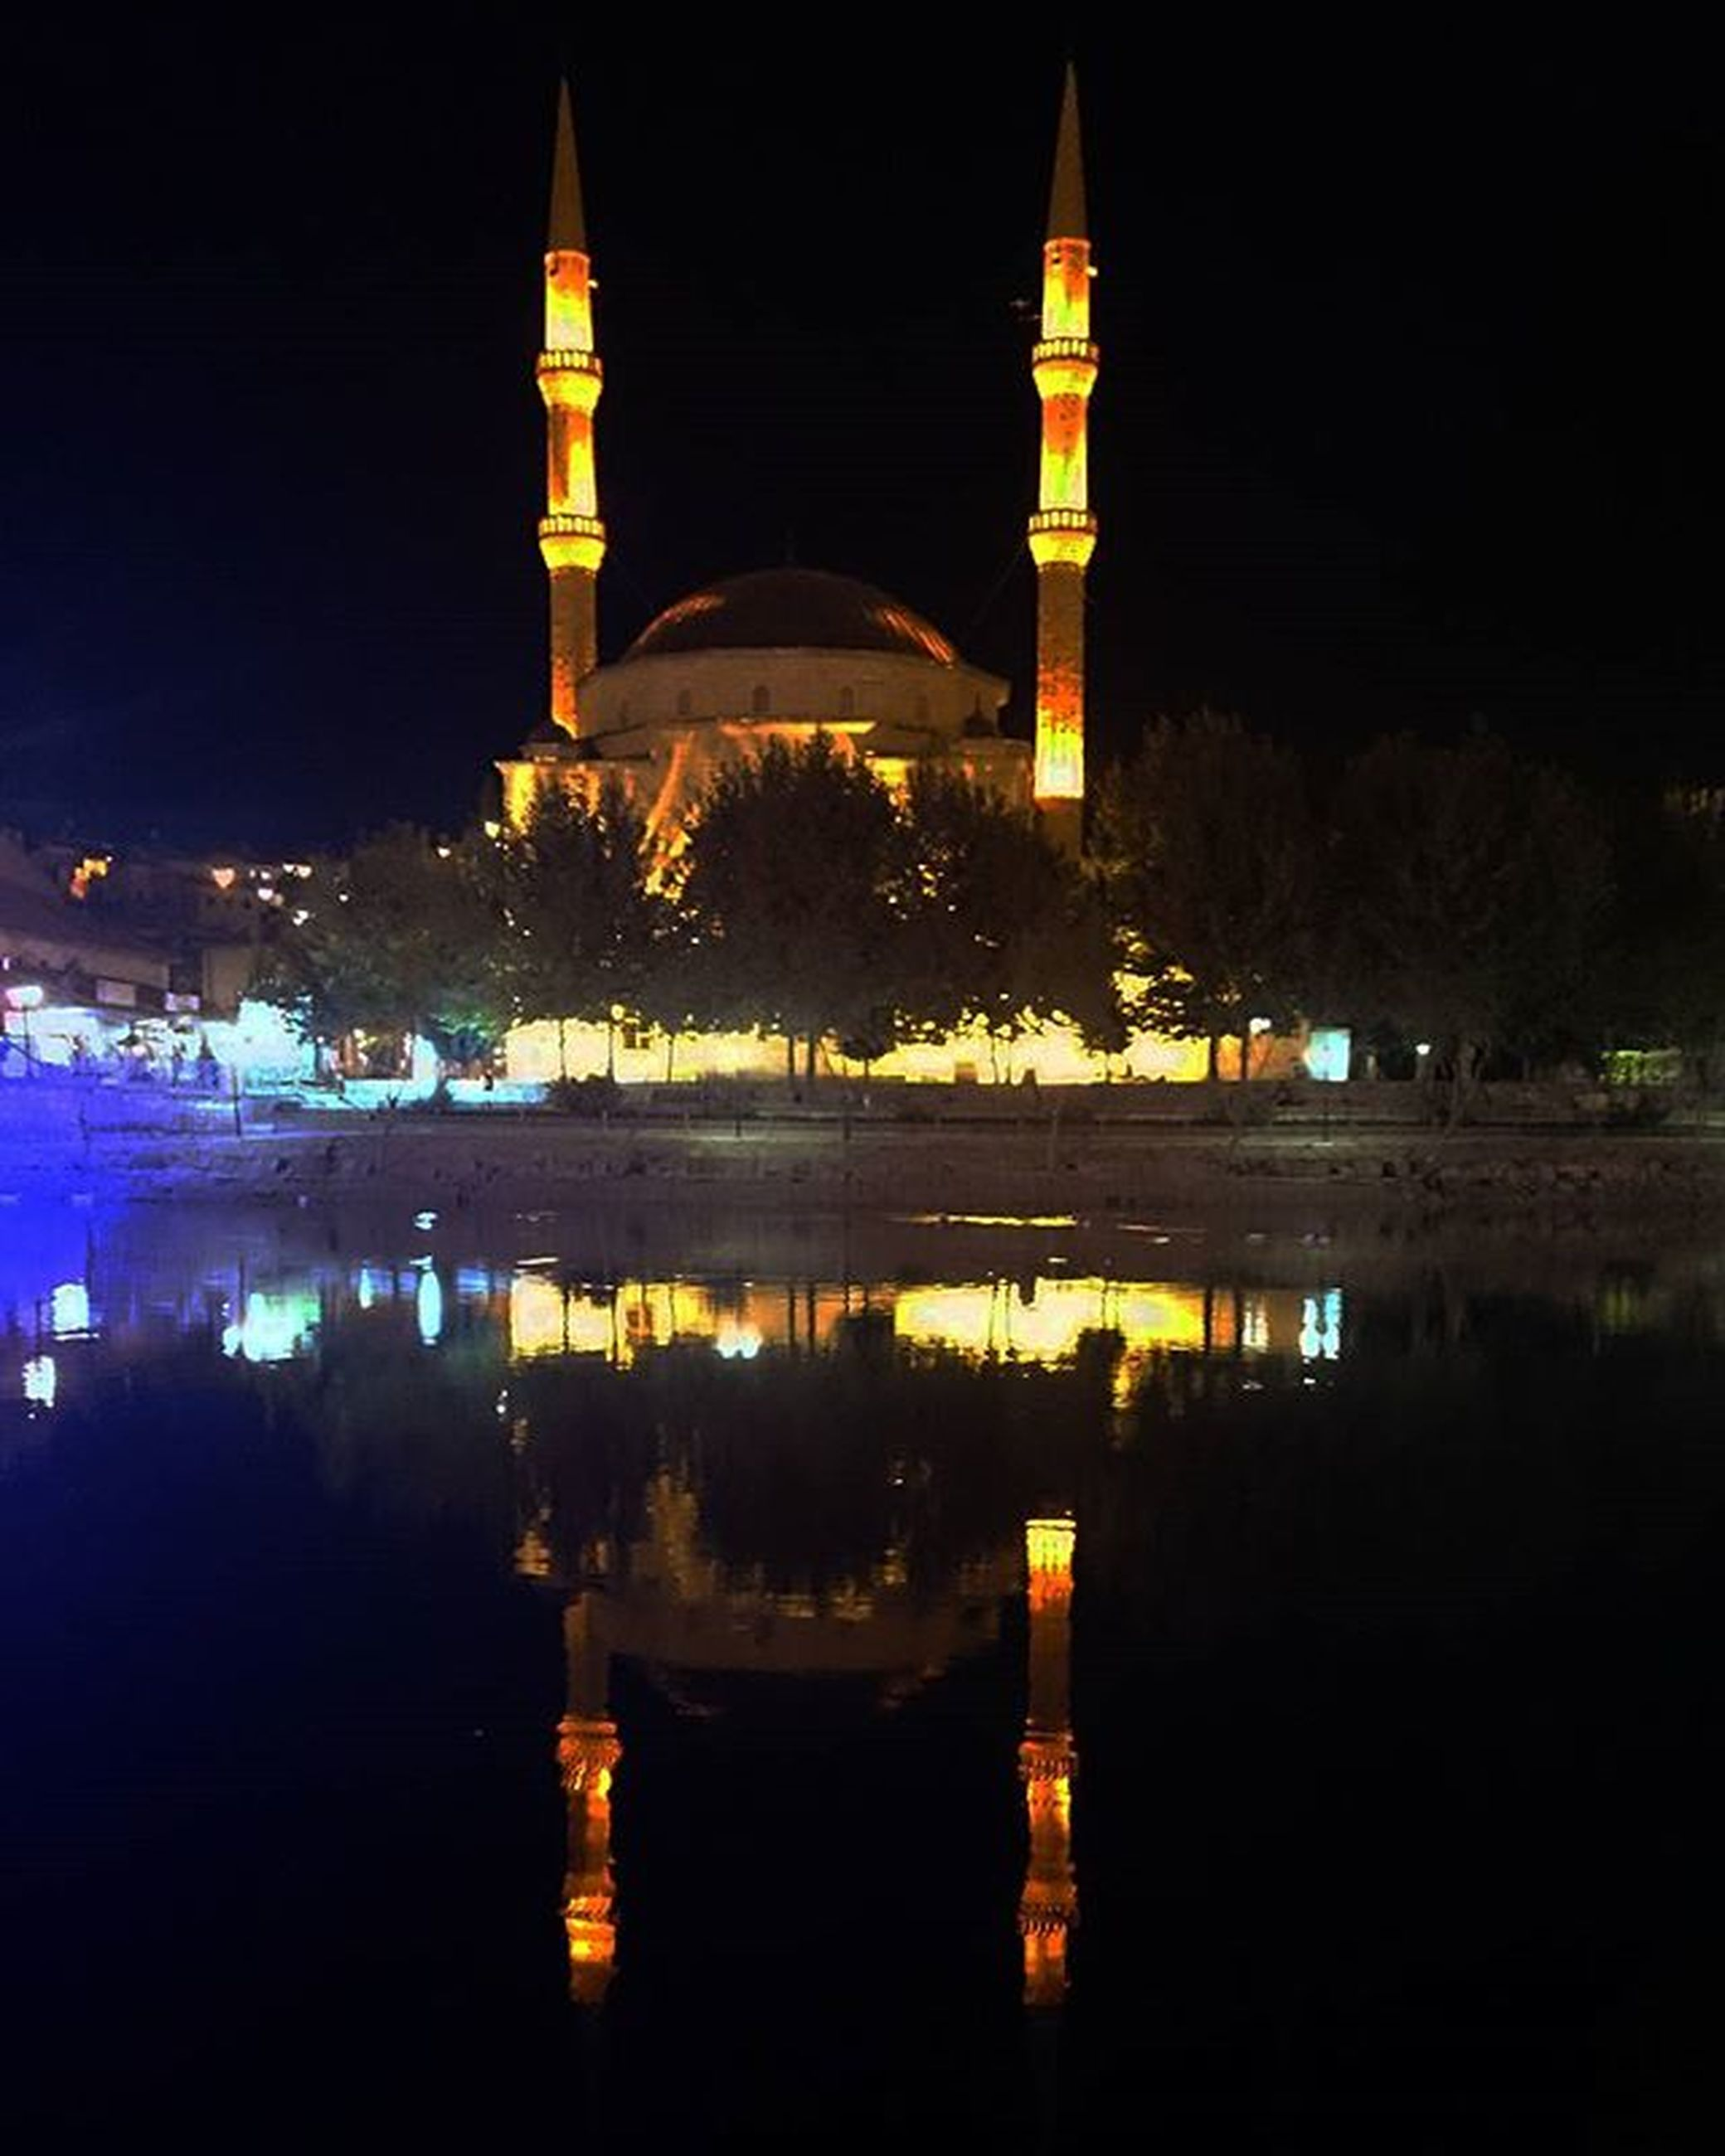 architecture, illuminated, built structure, night, reflection, water, building exterior, place of worship, religion, waterfront, river, spirituality, history, famous place, sky, travel destinations, lake, church, clear sky, dark